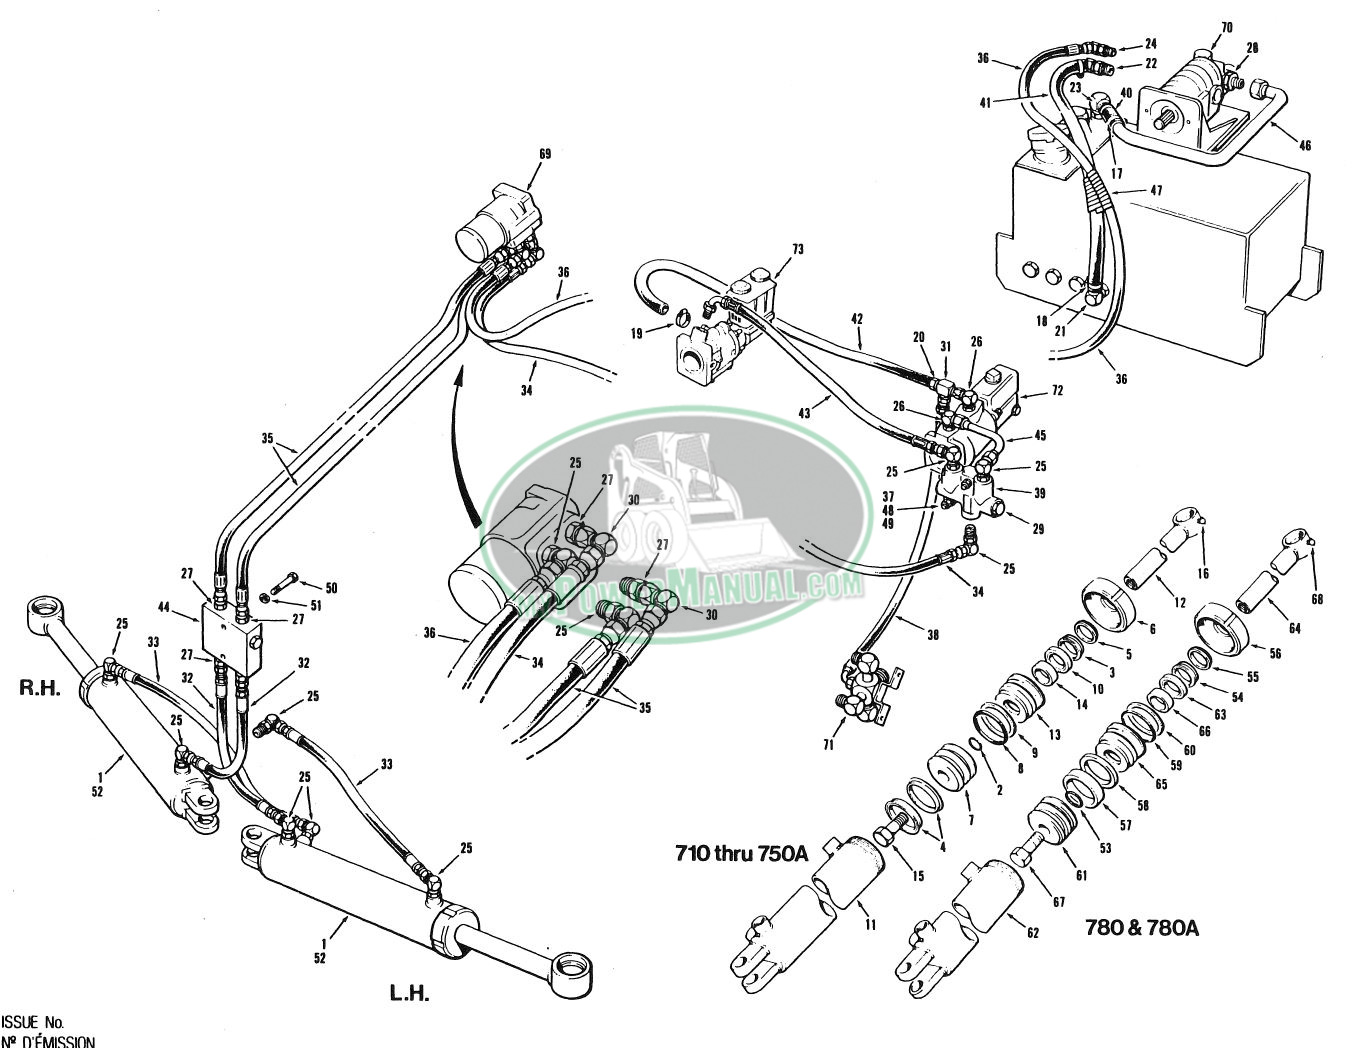 Champion 700 Series 4 and 5 Motor Grader Parts Manual